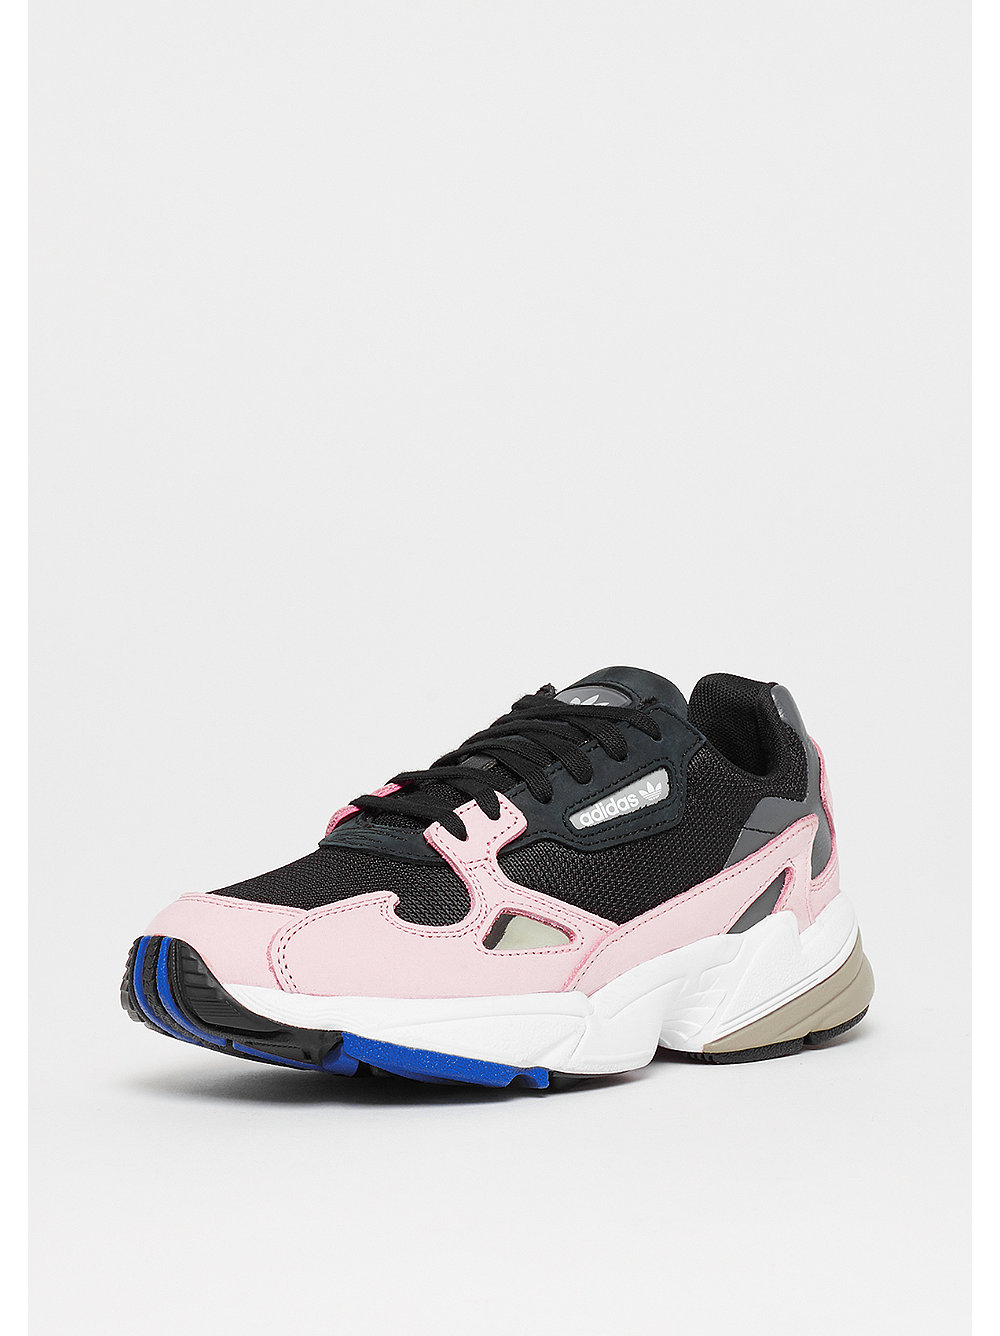 premium selection b3211 928a1 Ordina adidas Falcon W core black Sneaker su SNIPES!